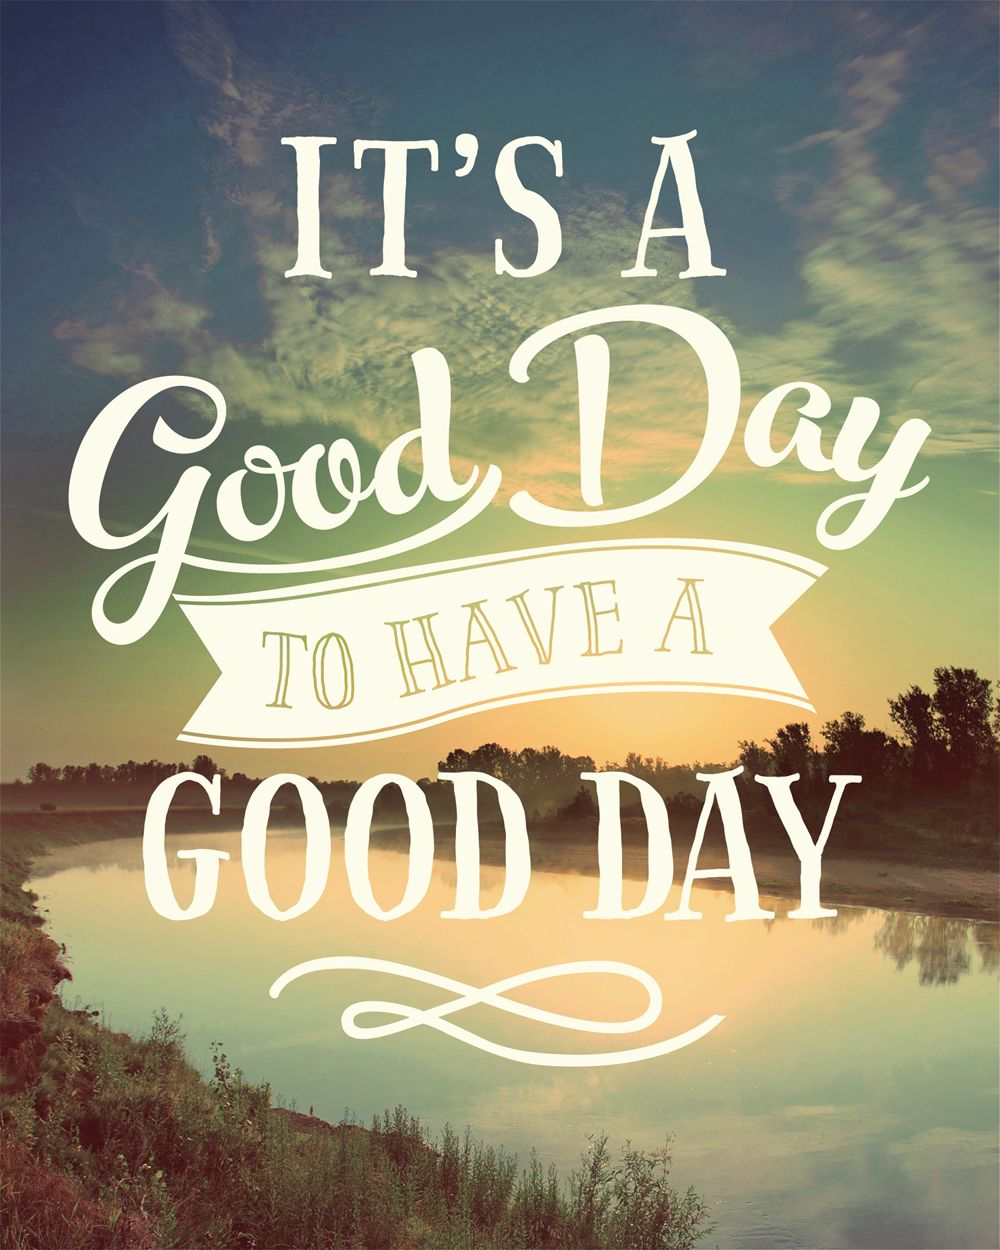 Its A Good Day To Have A Good Day Art Print Spring 2015